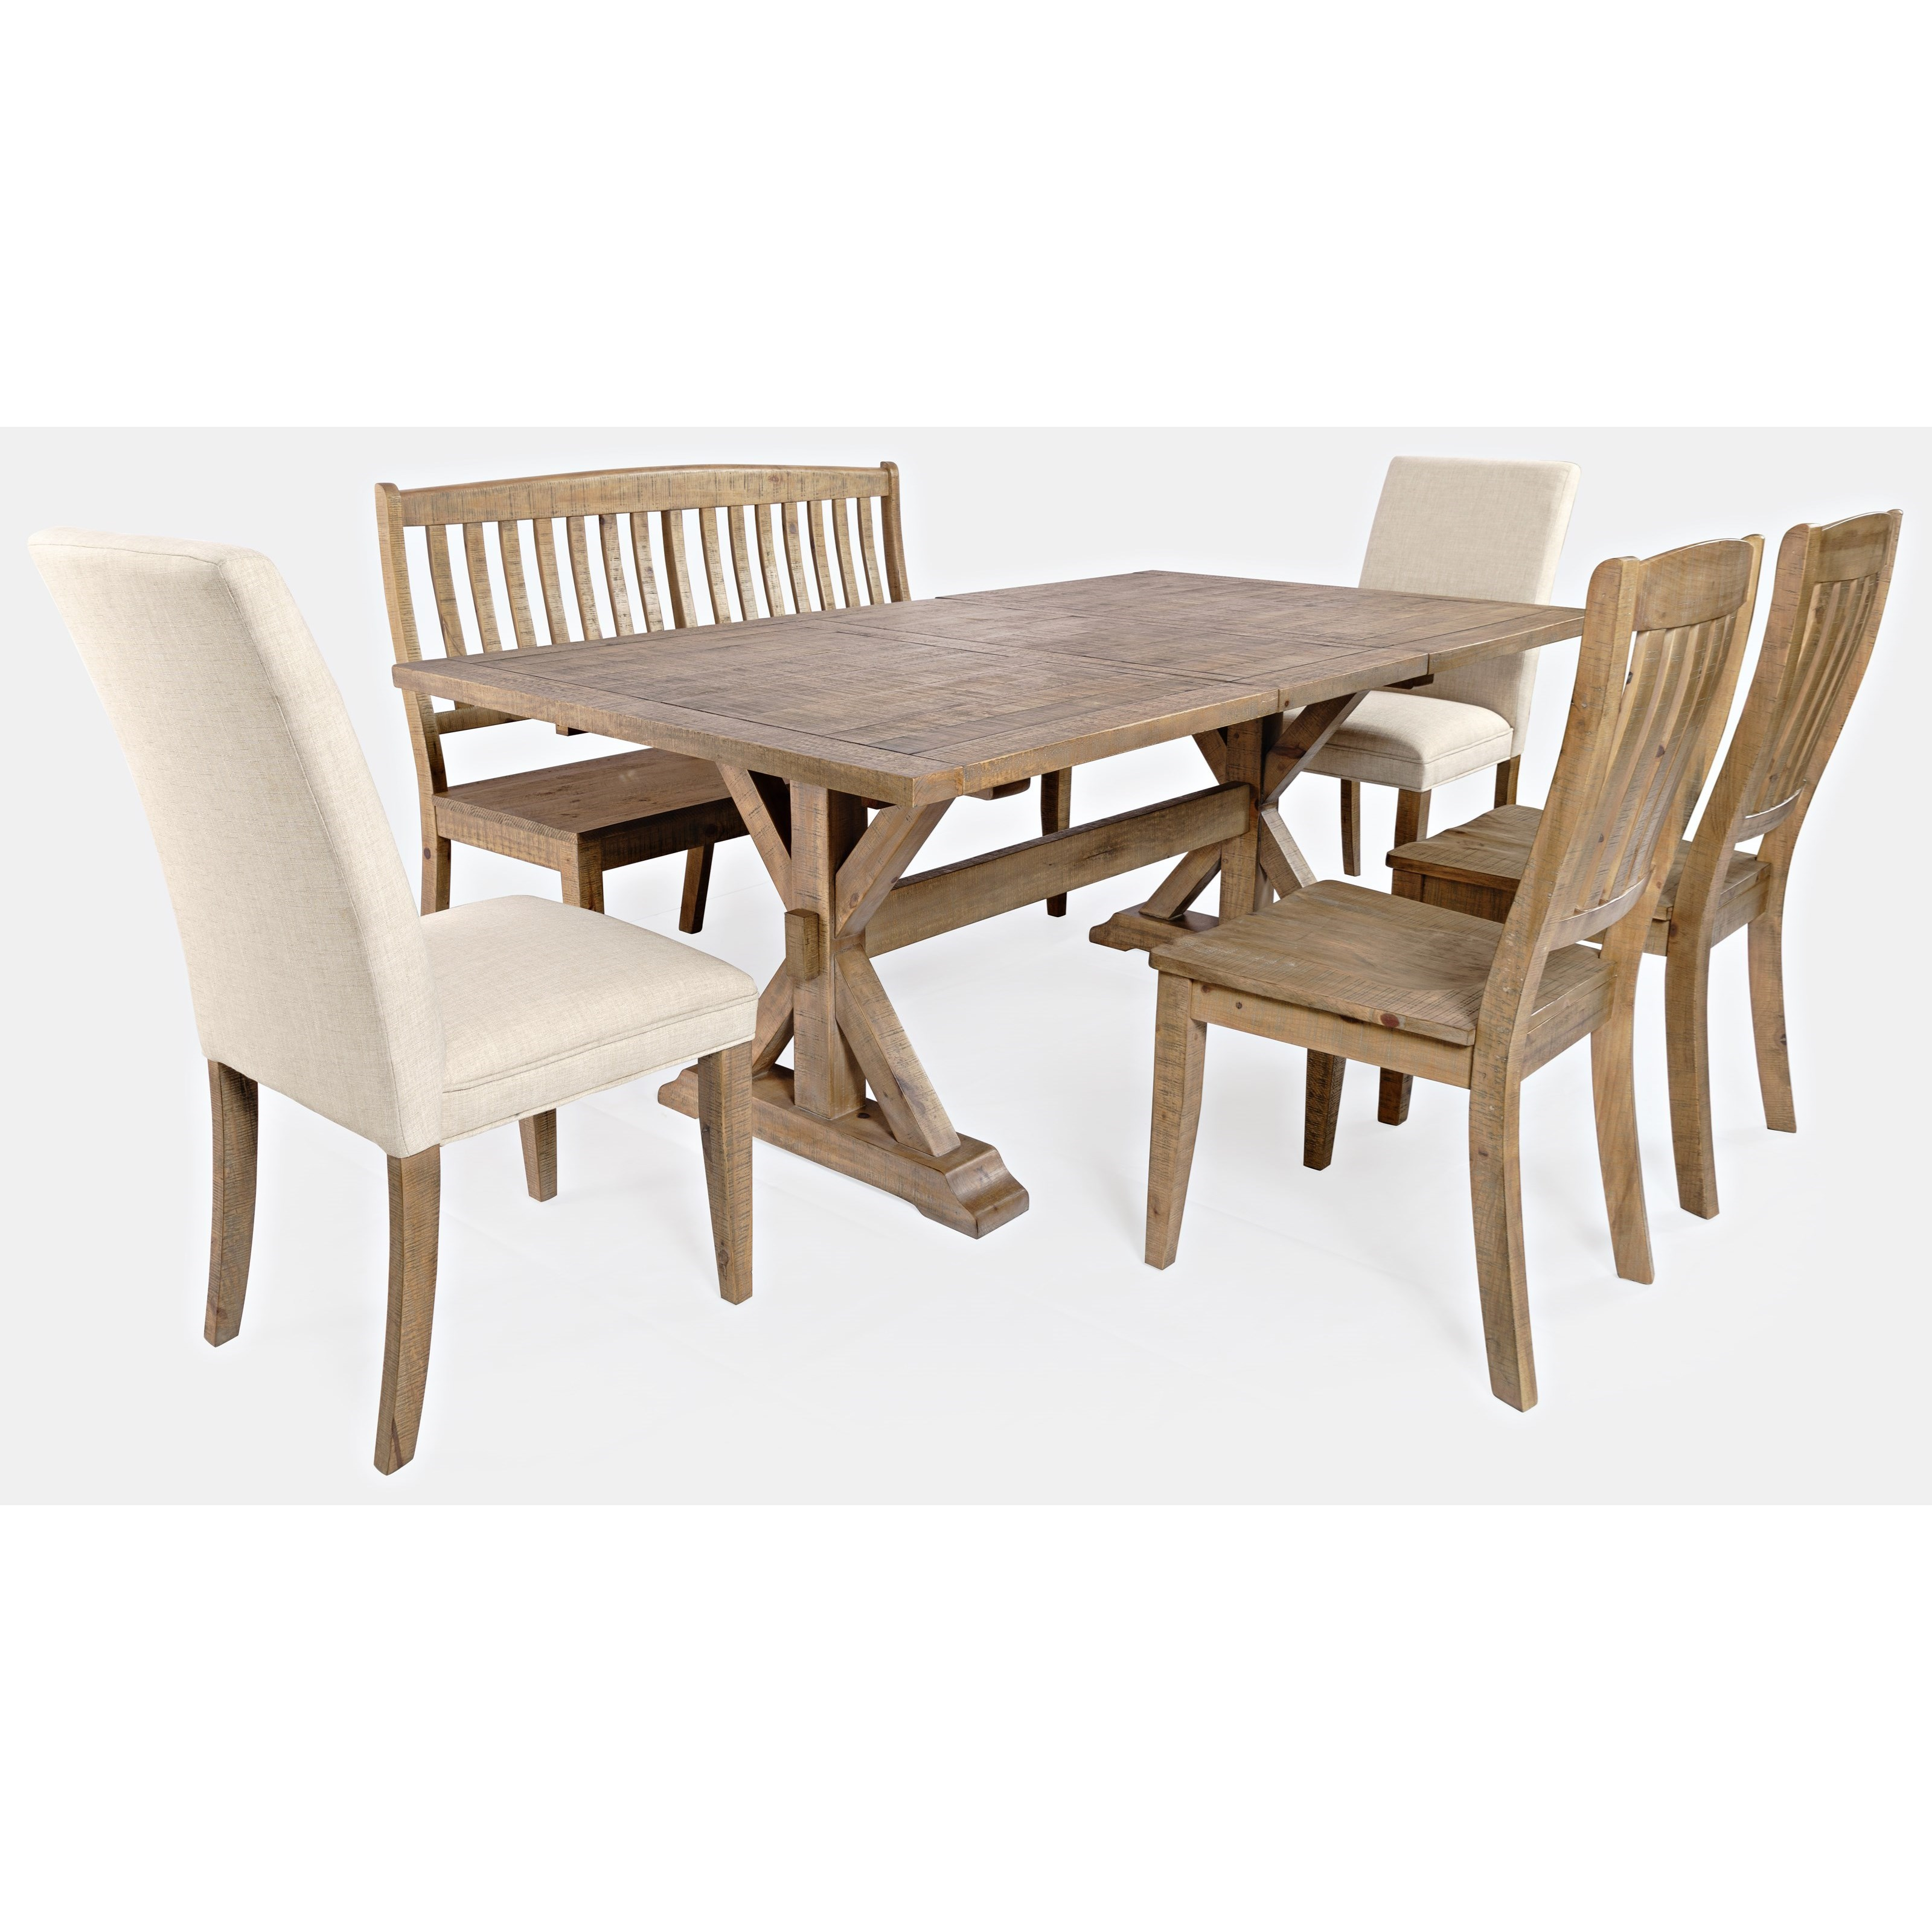 Carlyle Crossing 6-Piece Dining Table and Chair Set by VFM Signature at Virginia Furniture Market